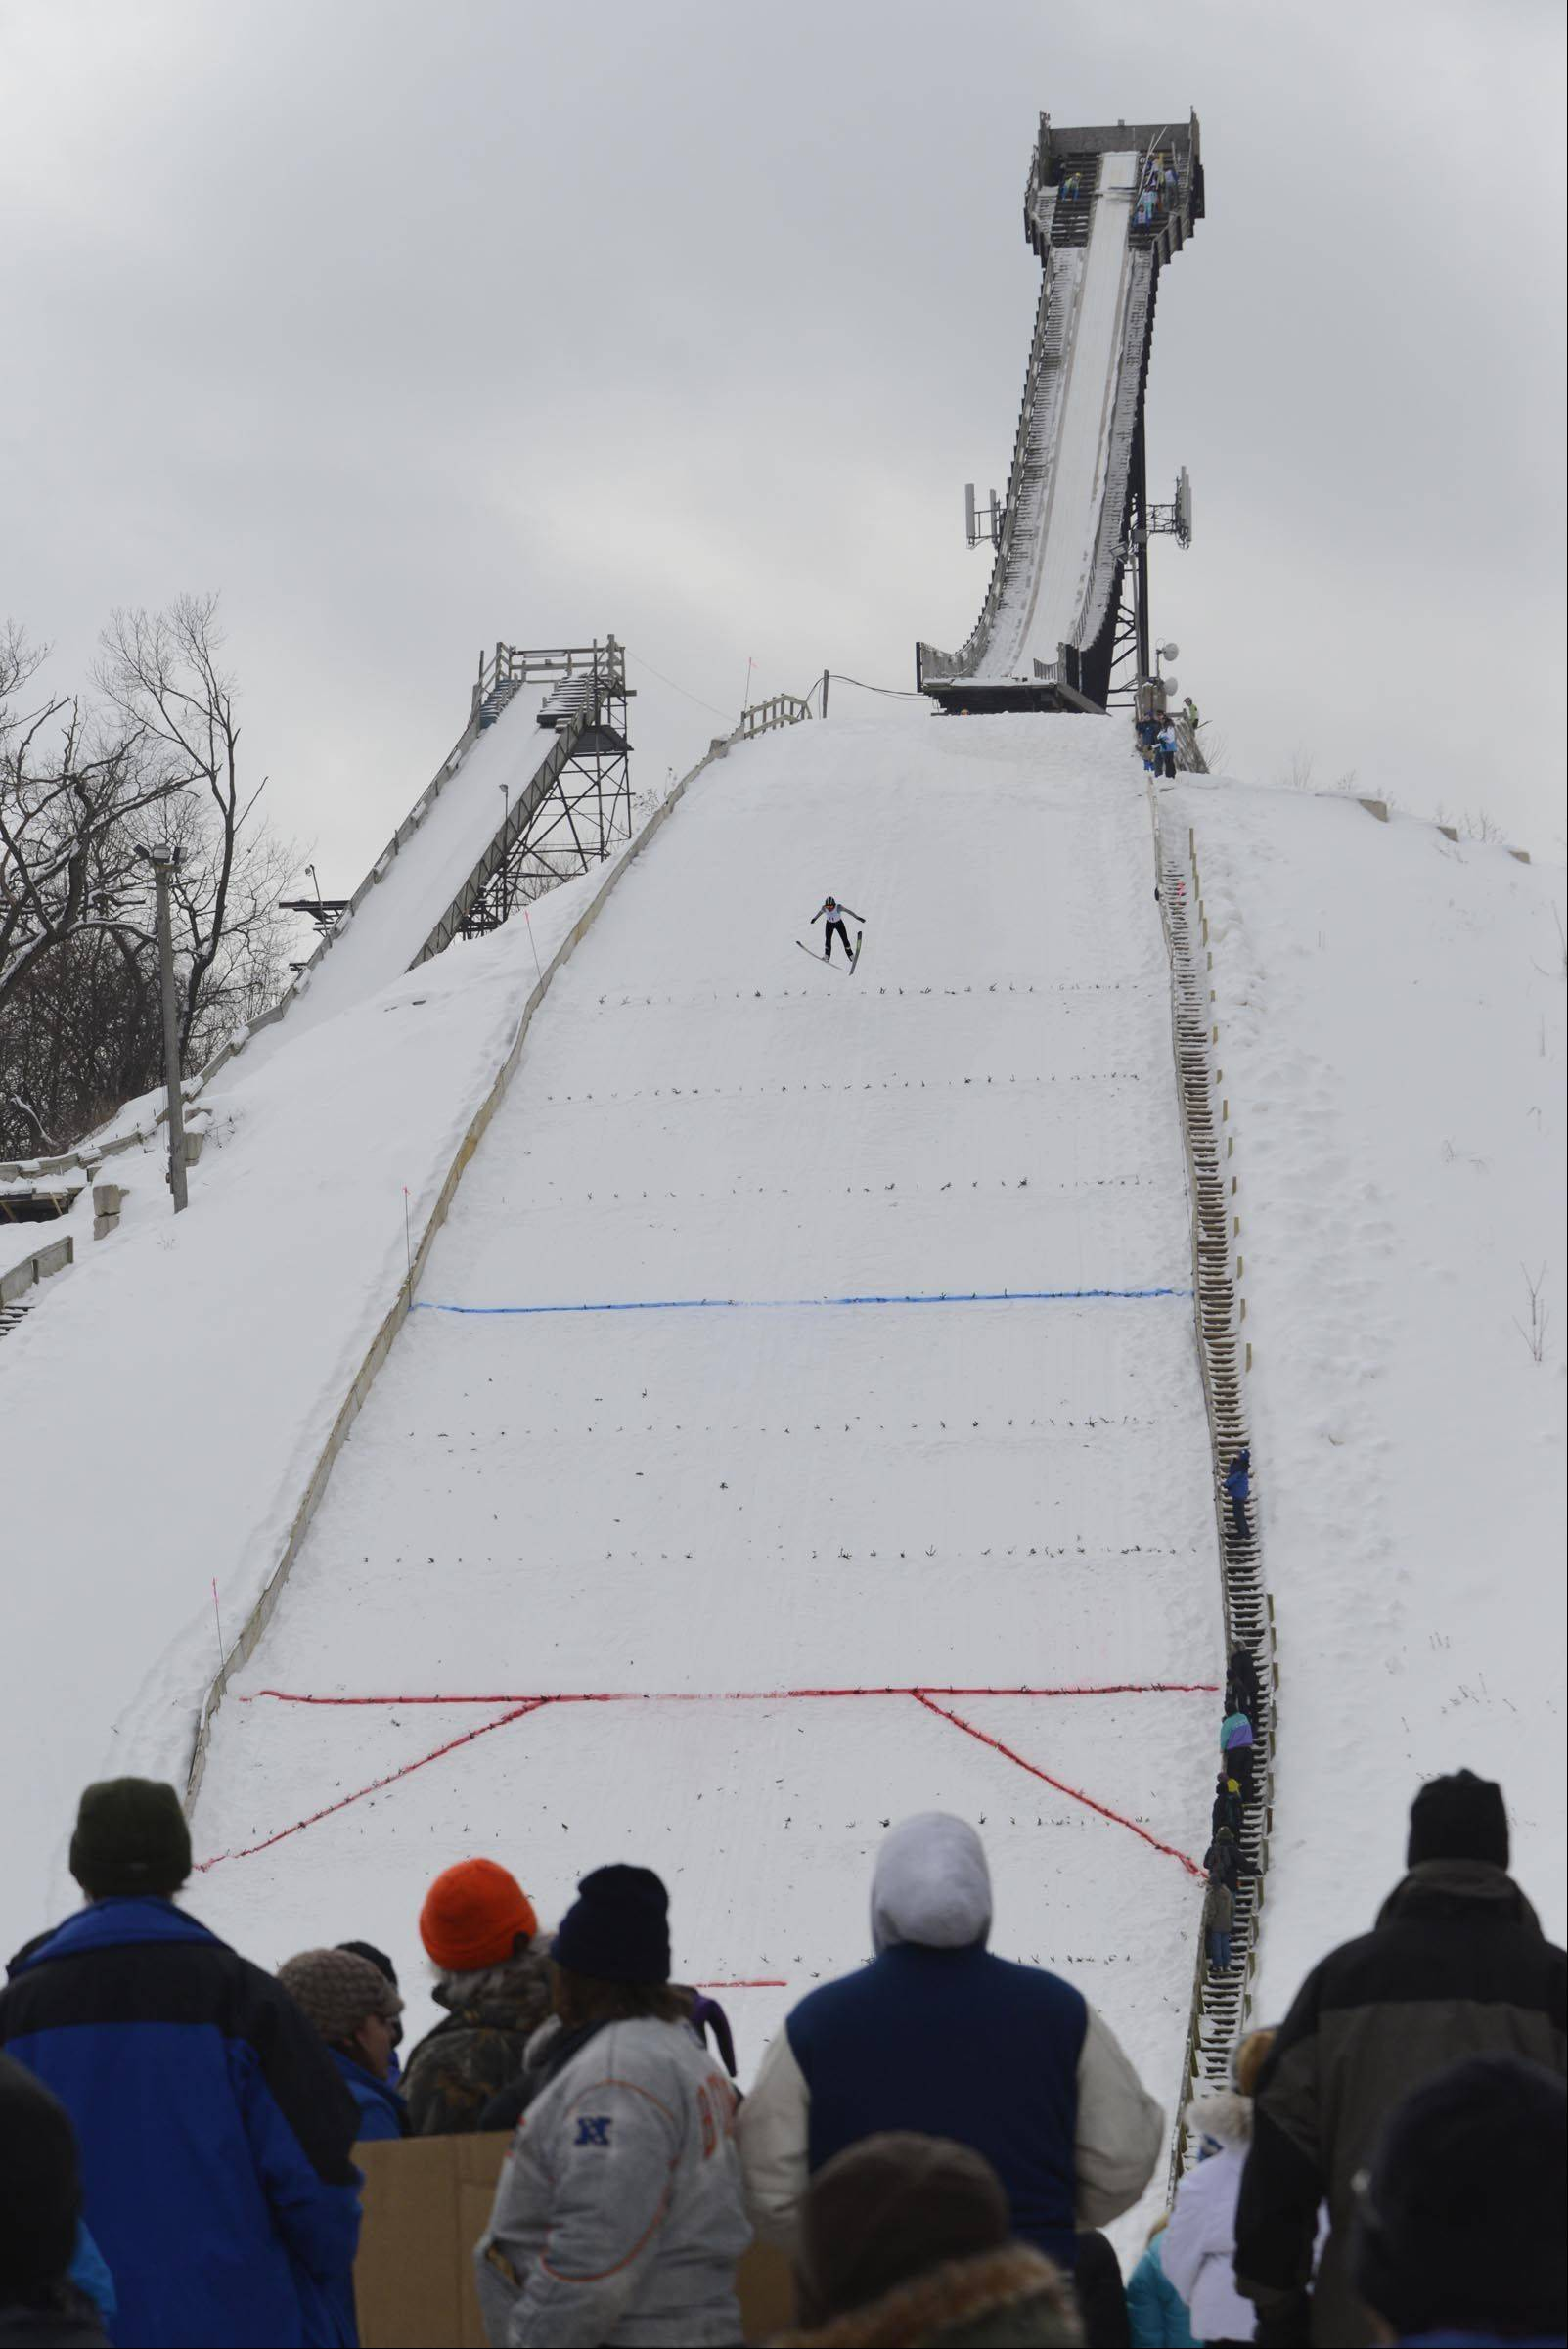 Somer Schrock, 17, of Minnesota, comes down the 70-meter hill Sunday at the Norge International Ski Jumping Tournament in Fox River Grove. More than 60 skiers competed in Sunday's event.